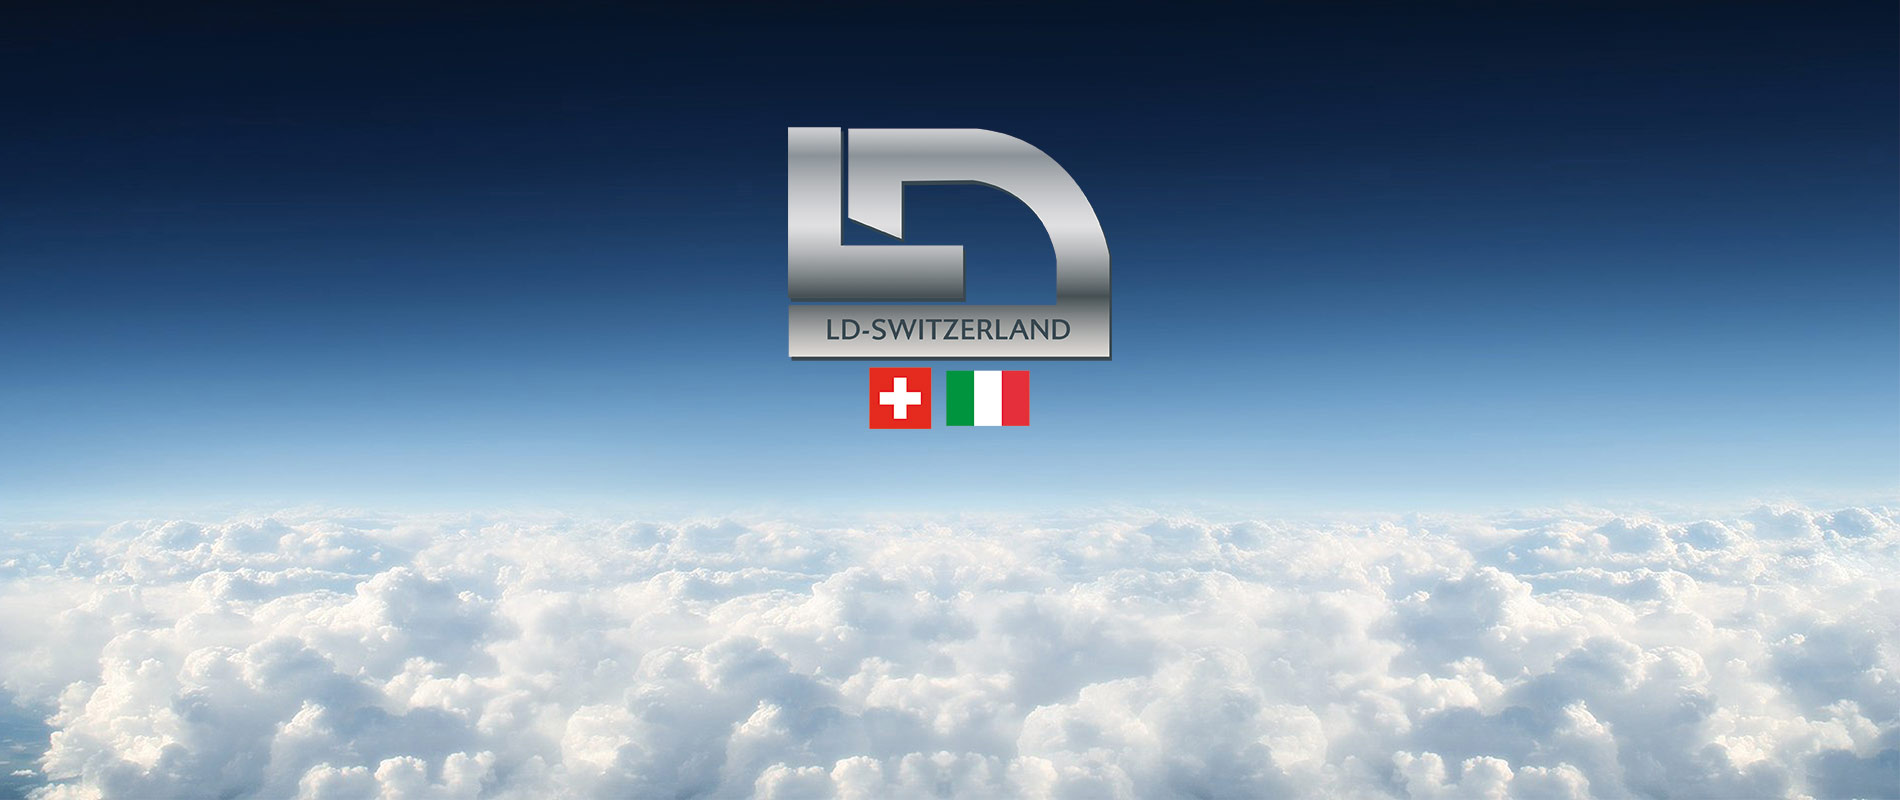 LD switzerland logo